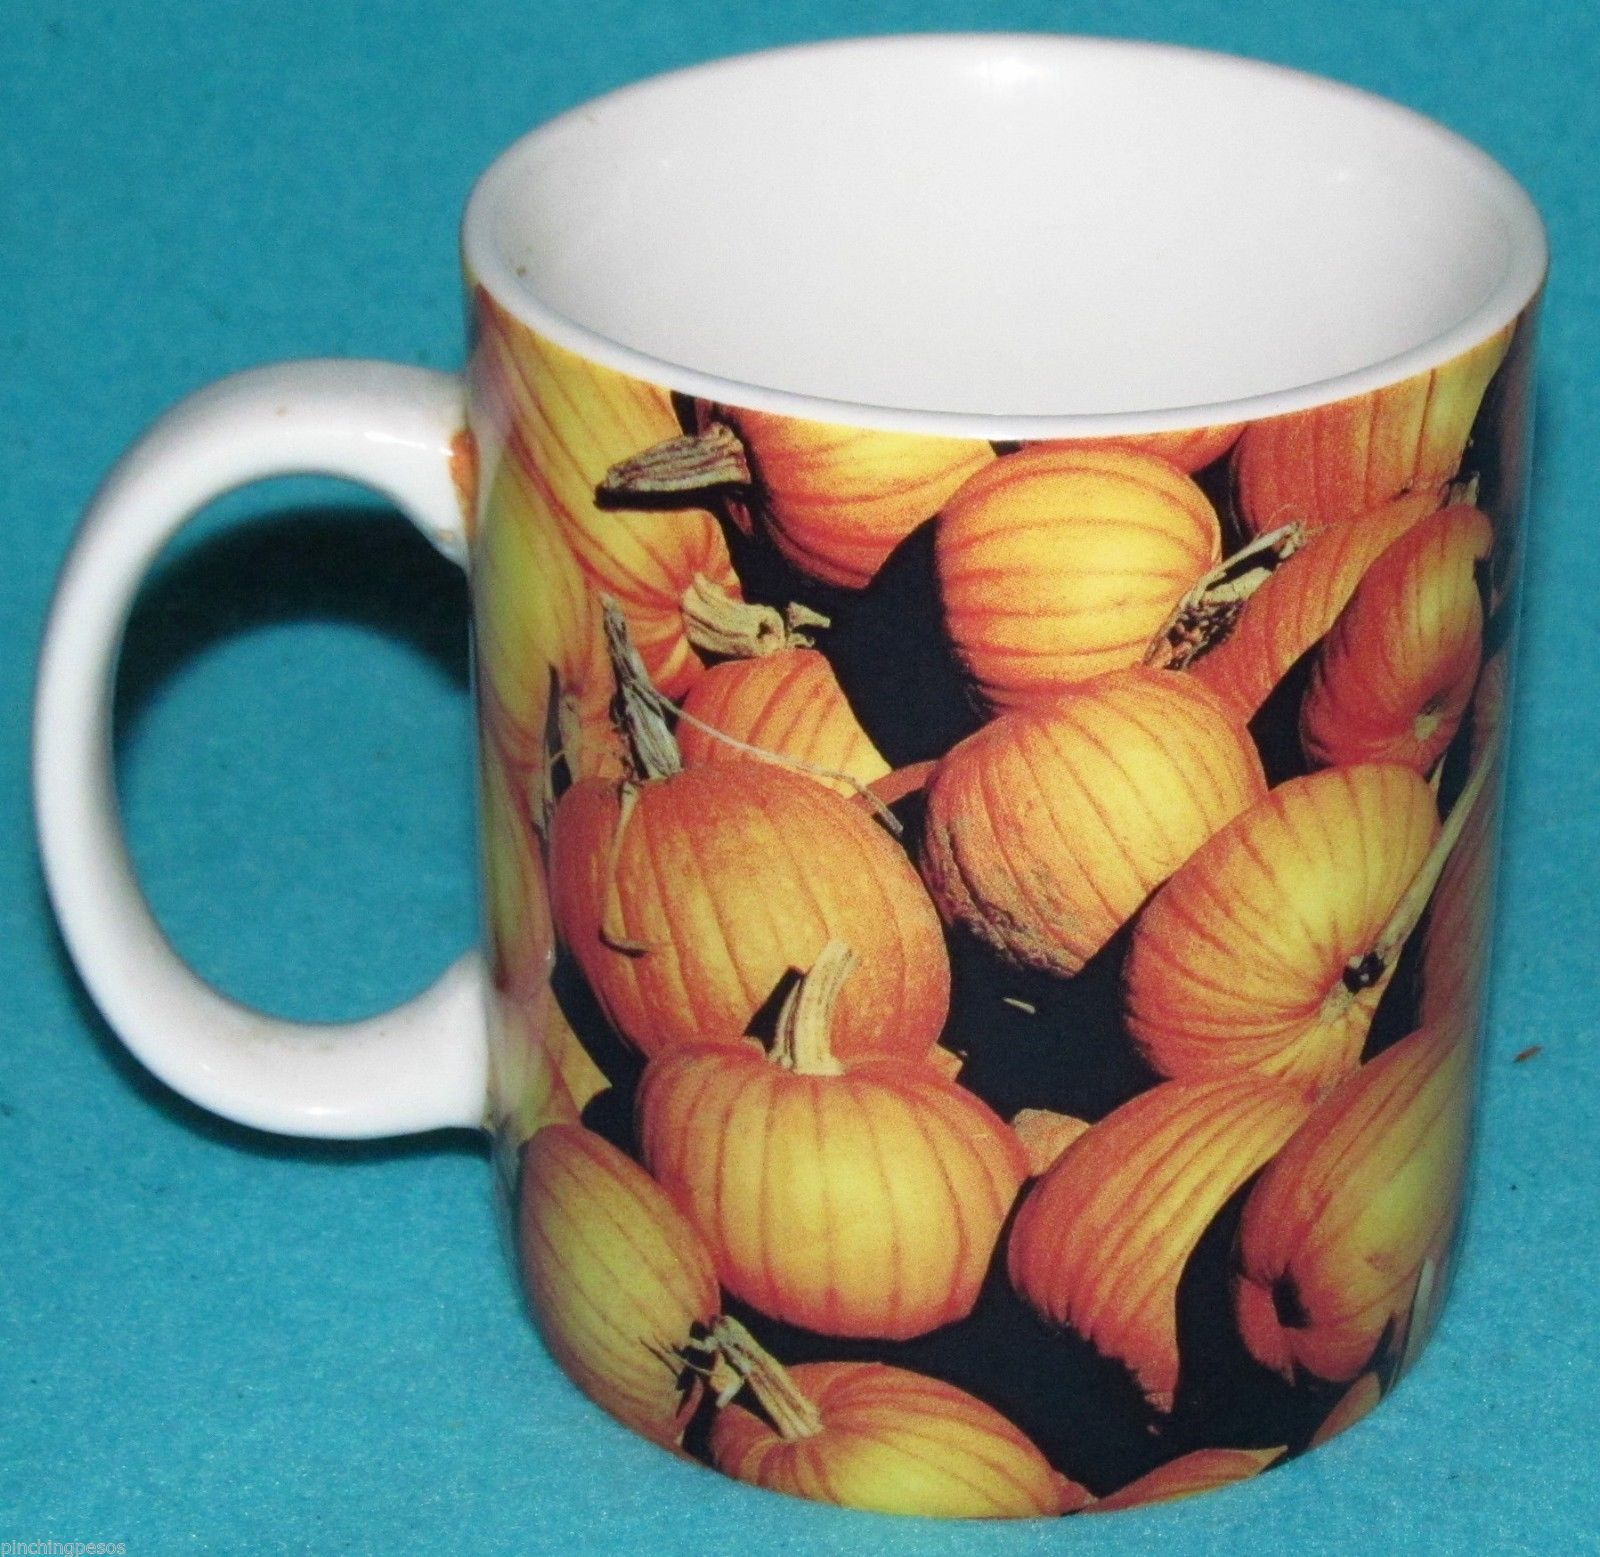 starbucks pumpkins spice halloween coffee mug grande cup 16oz large